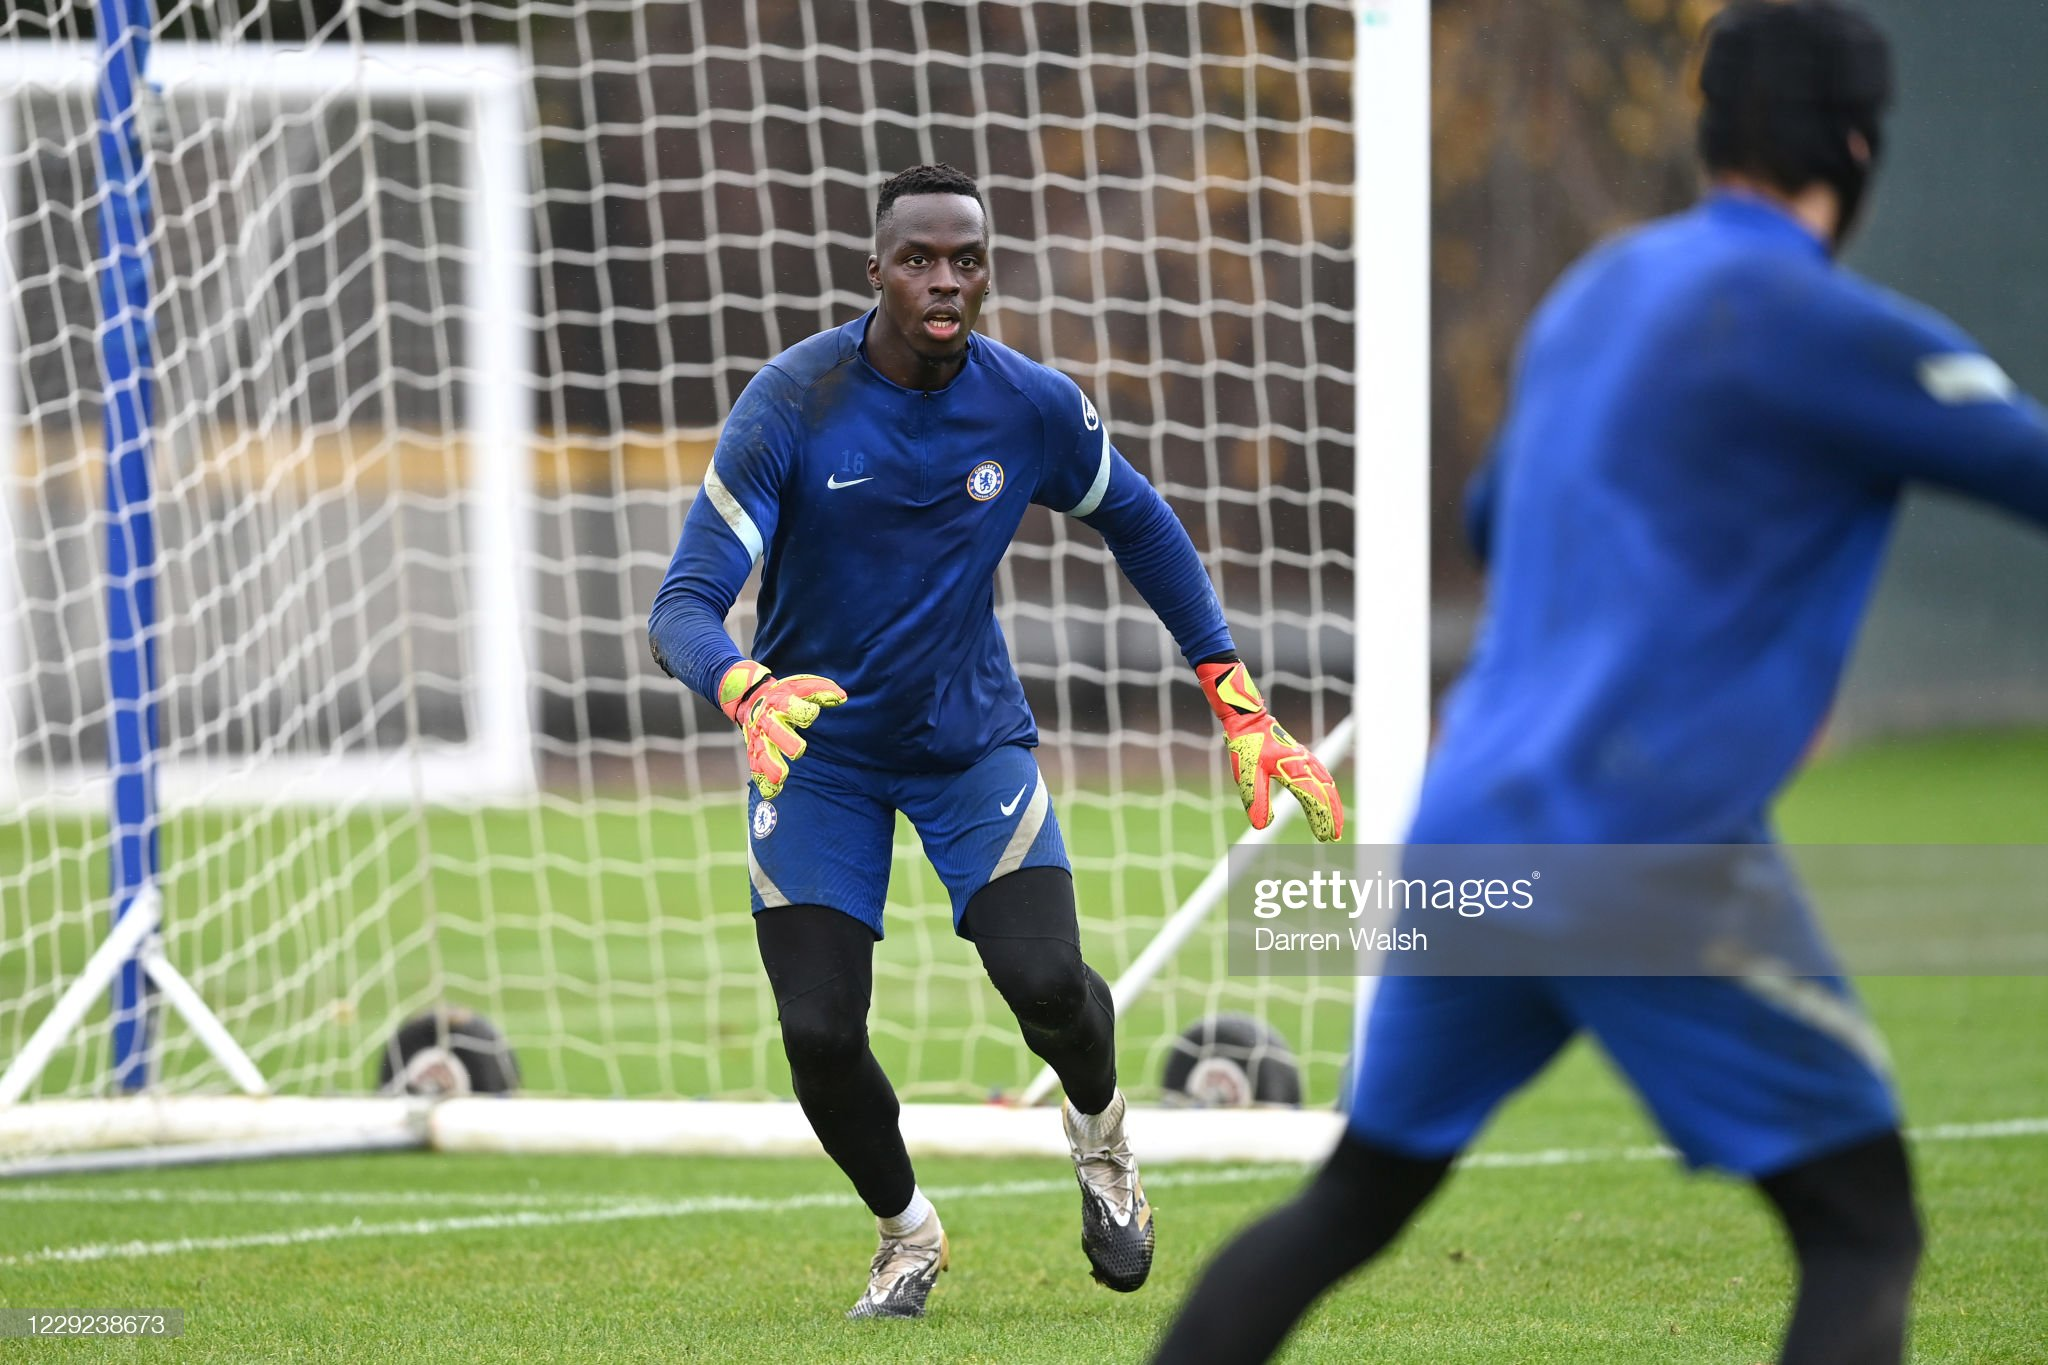 Chelsea Press Conference And Training Session : News Photo